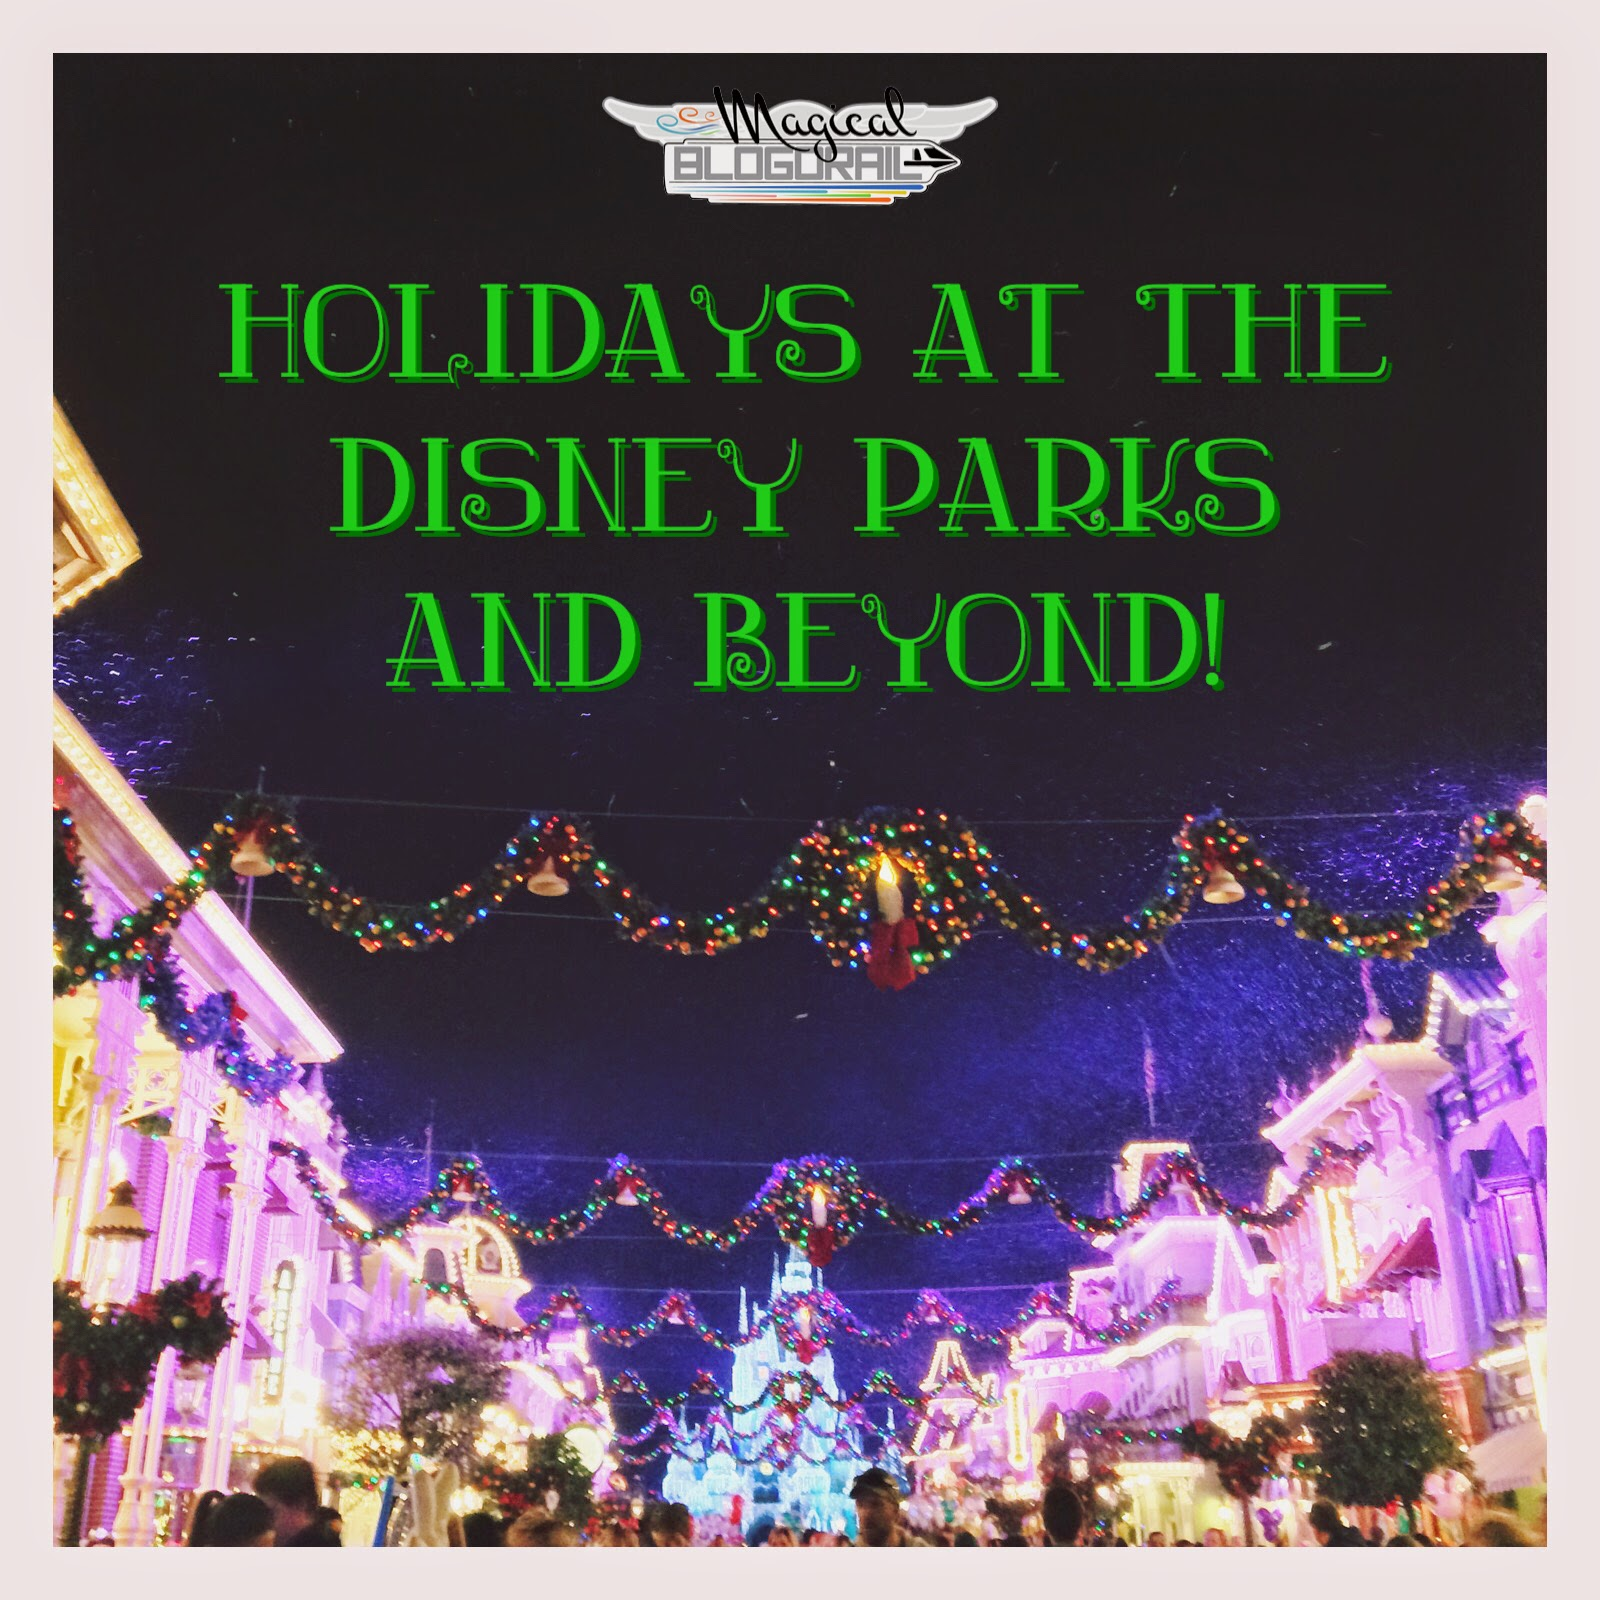 All the holiday magic you can find in the Disney Parks and beyond!